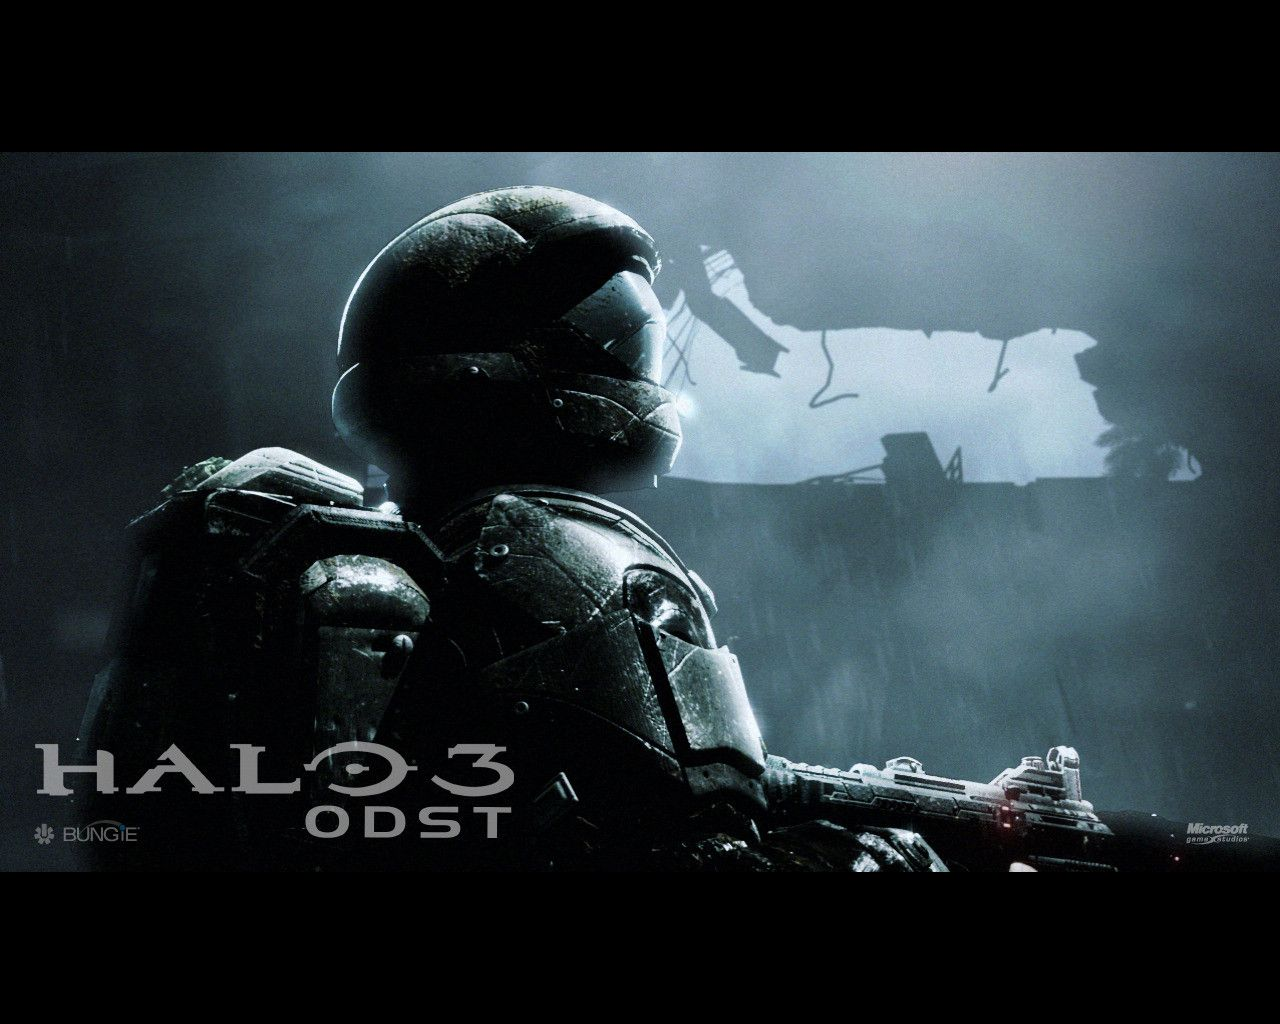 Halo 3 Odst Gifs 1070802 Hd Wallpaper Backgrounds Download